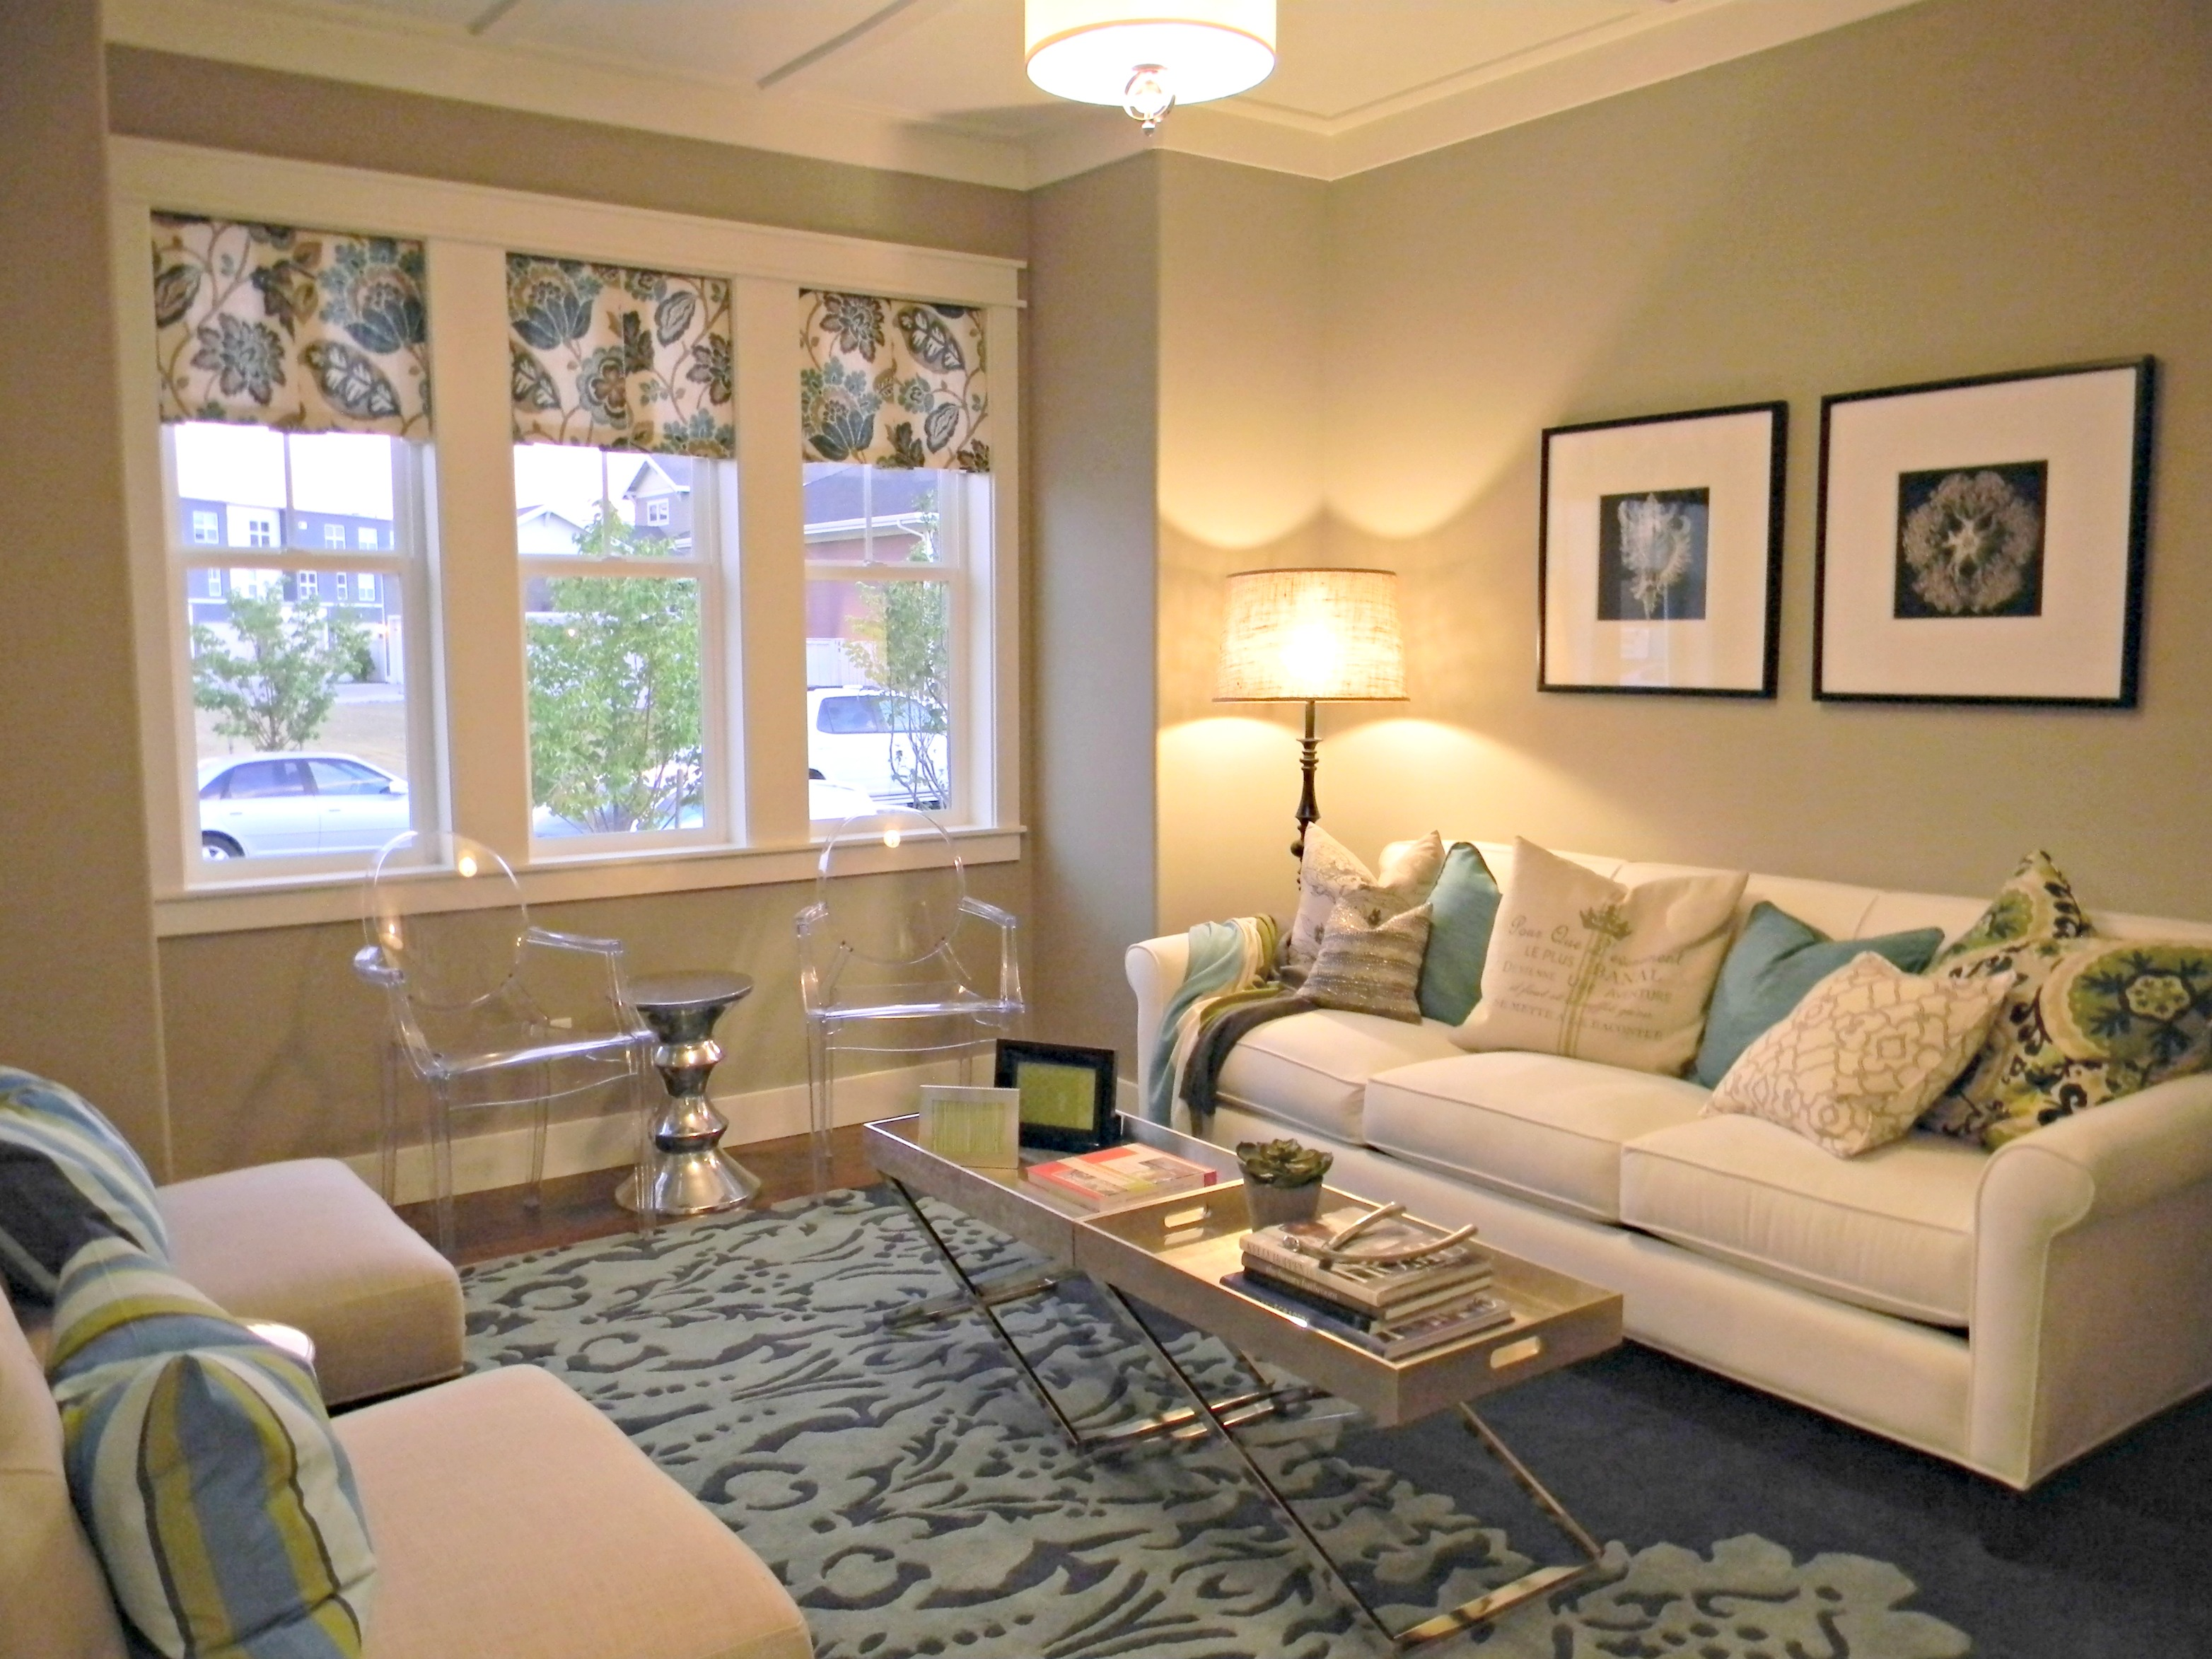 diy blogger house at daybreak organize and decorate